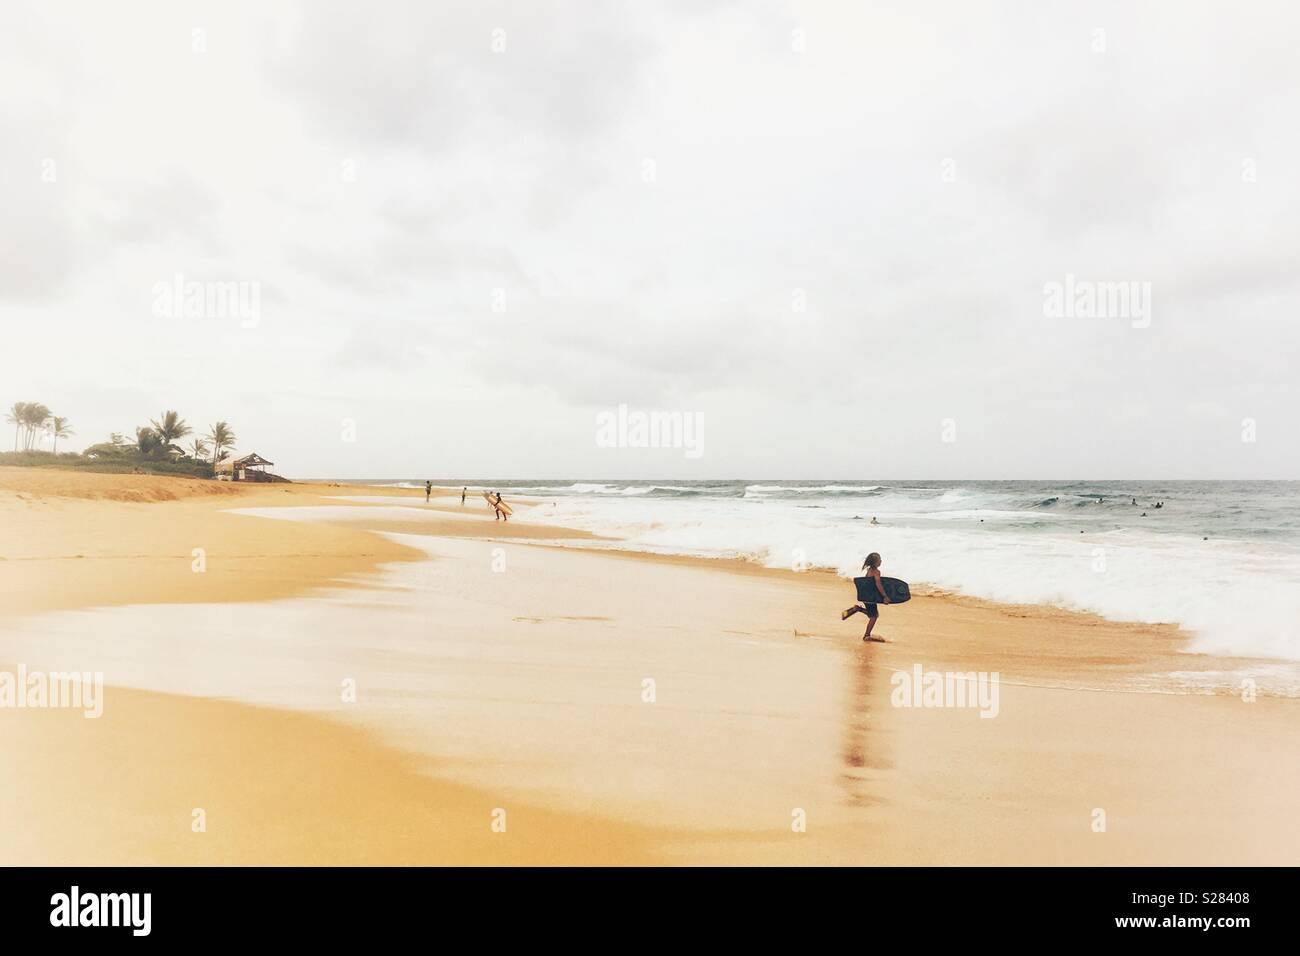 A boogie boarder man wearing short fins running on a beach into the ocean. Space for copy. - Stock Image